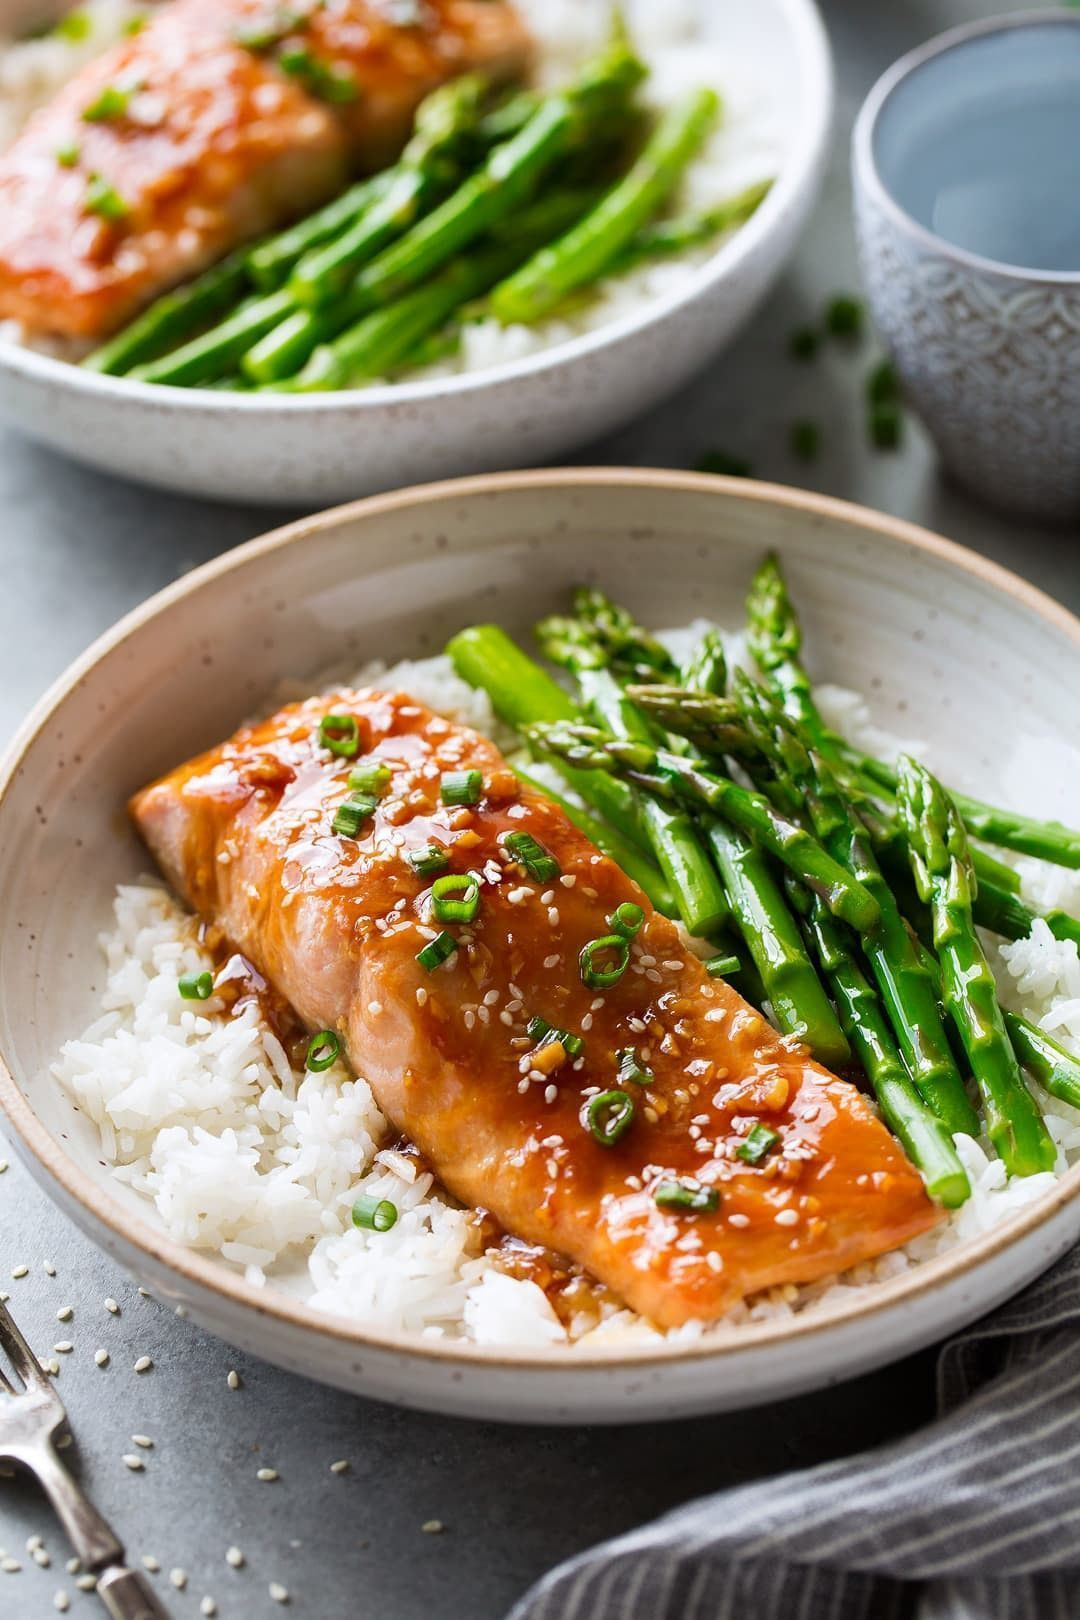 Teriyaki Salmon #teriyakisalmon Teriyaki Salmon | WTFood | Copy Me That #teriyakisalmon Teriyaki Salmon #teriyakisalmon Teriyaki Salmon | WTFood | Copy Me That #teriyakisalmon Teriyaki Salmon #teriyakisalmon Teriyaki Salmon | WTFood | Copy Me That #teriyakisalmon Teriyaki Salmon #teriyakisalmon Teriyaki Salmon | WTFood | Copy Me That #teriyakisalmon